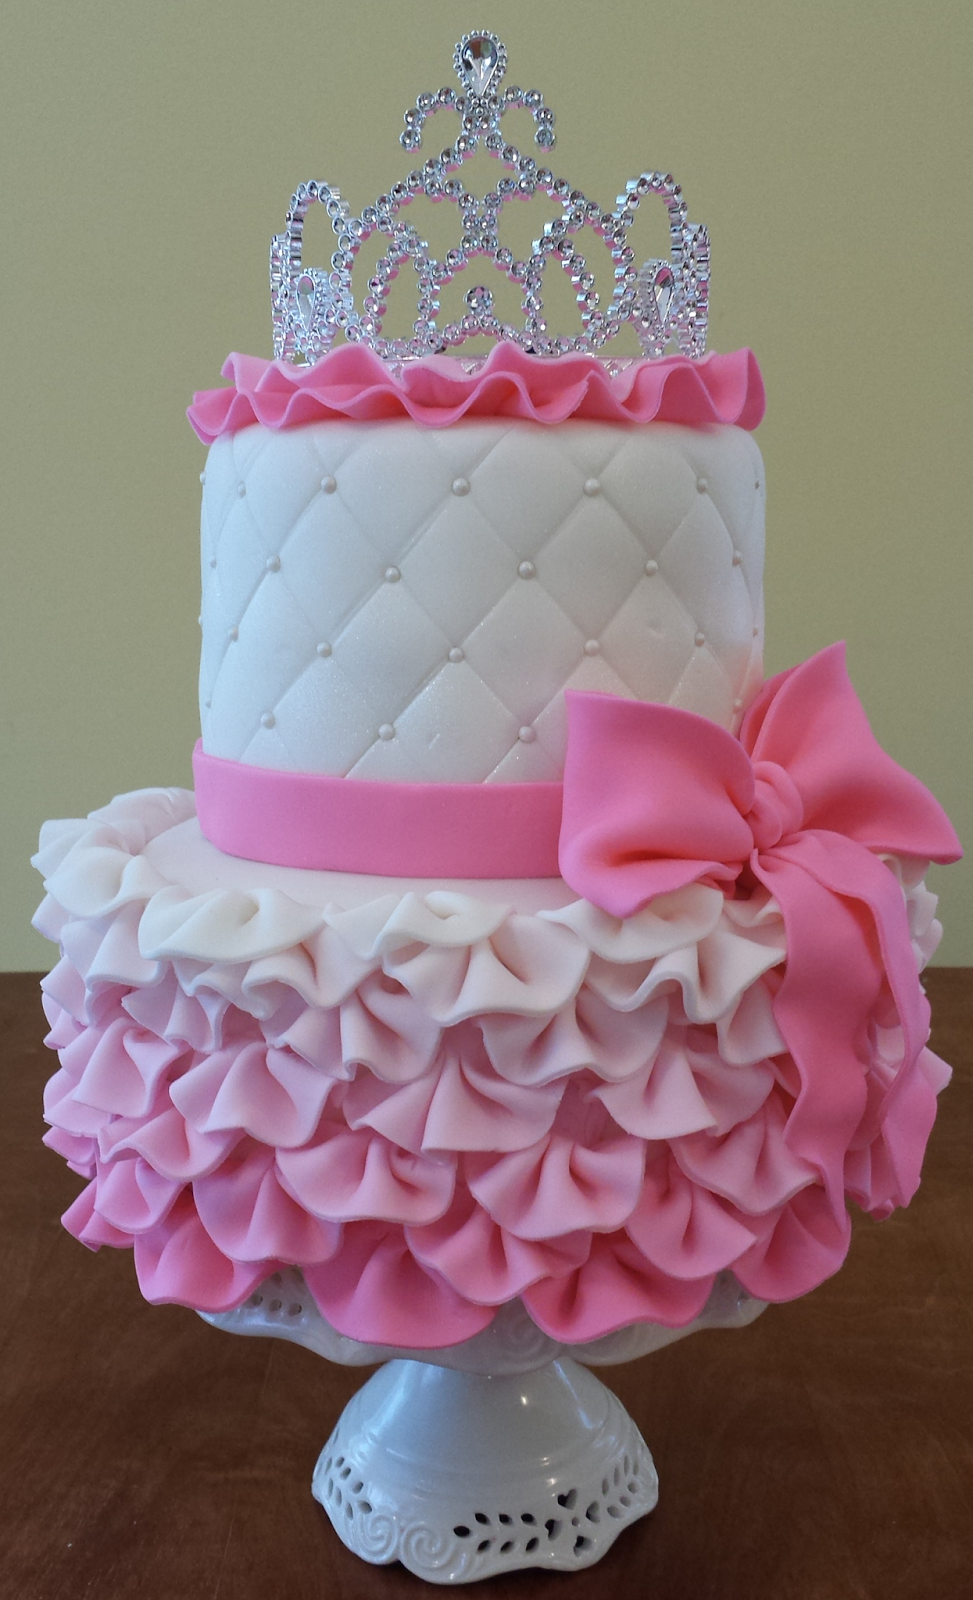 Do You Have A Little Princess In The House Theyll Love This Stunning Pull Apart Cupcake Cake